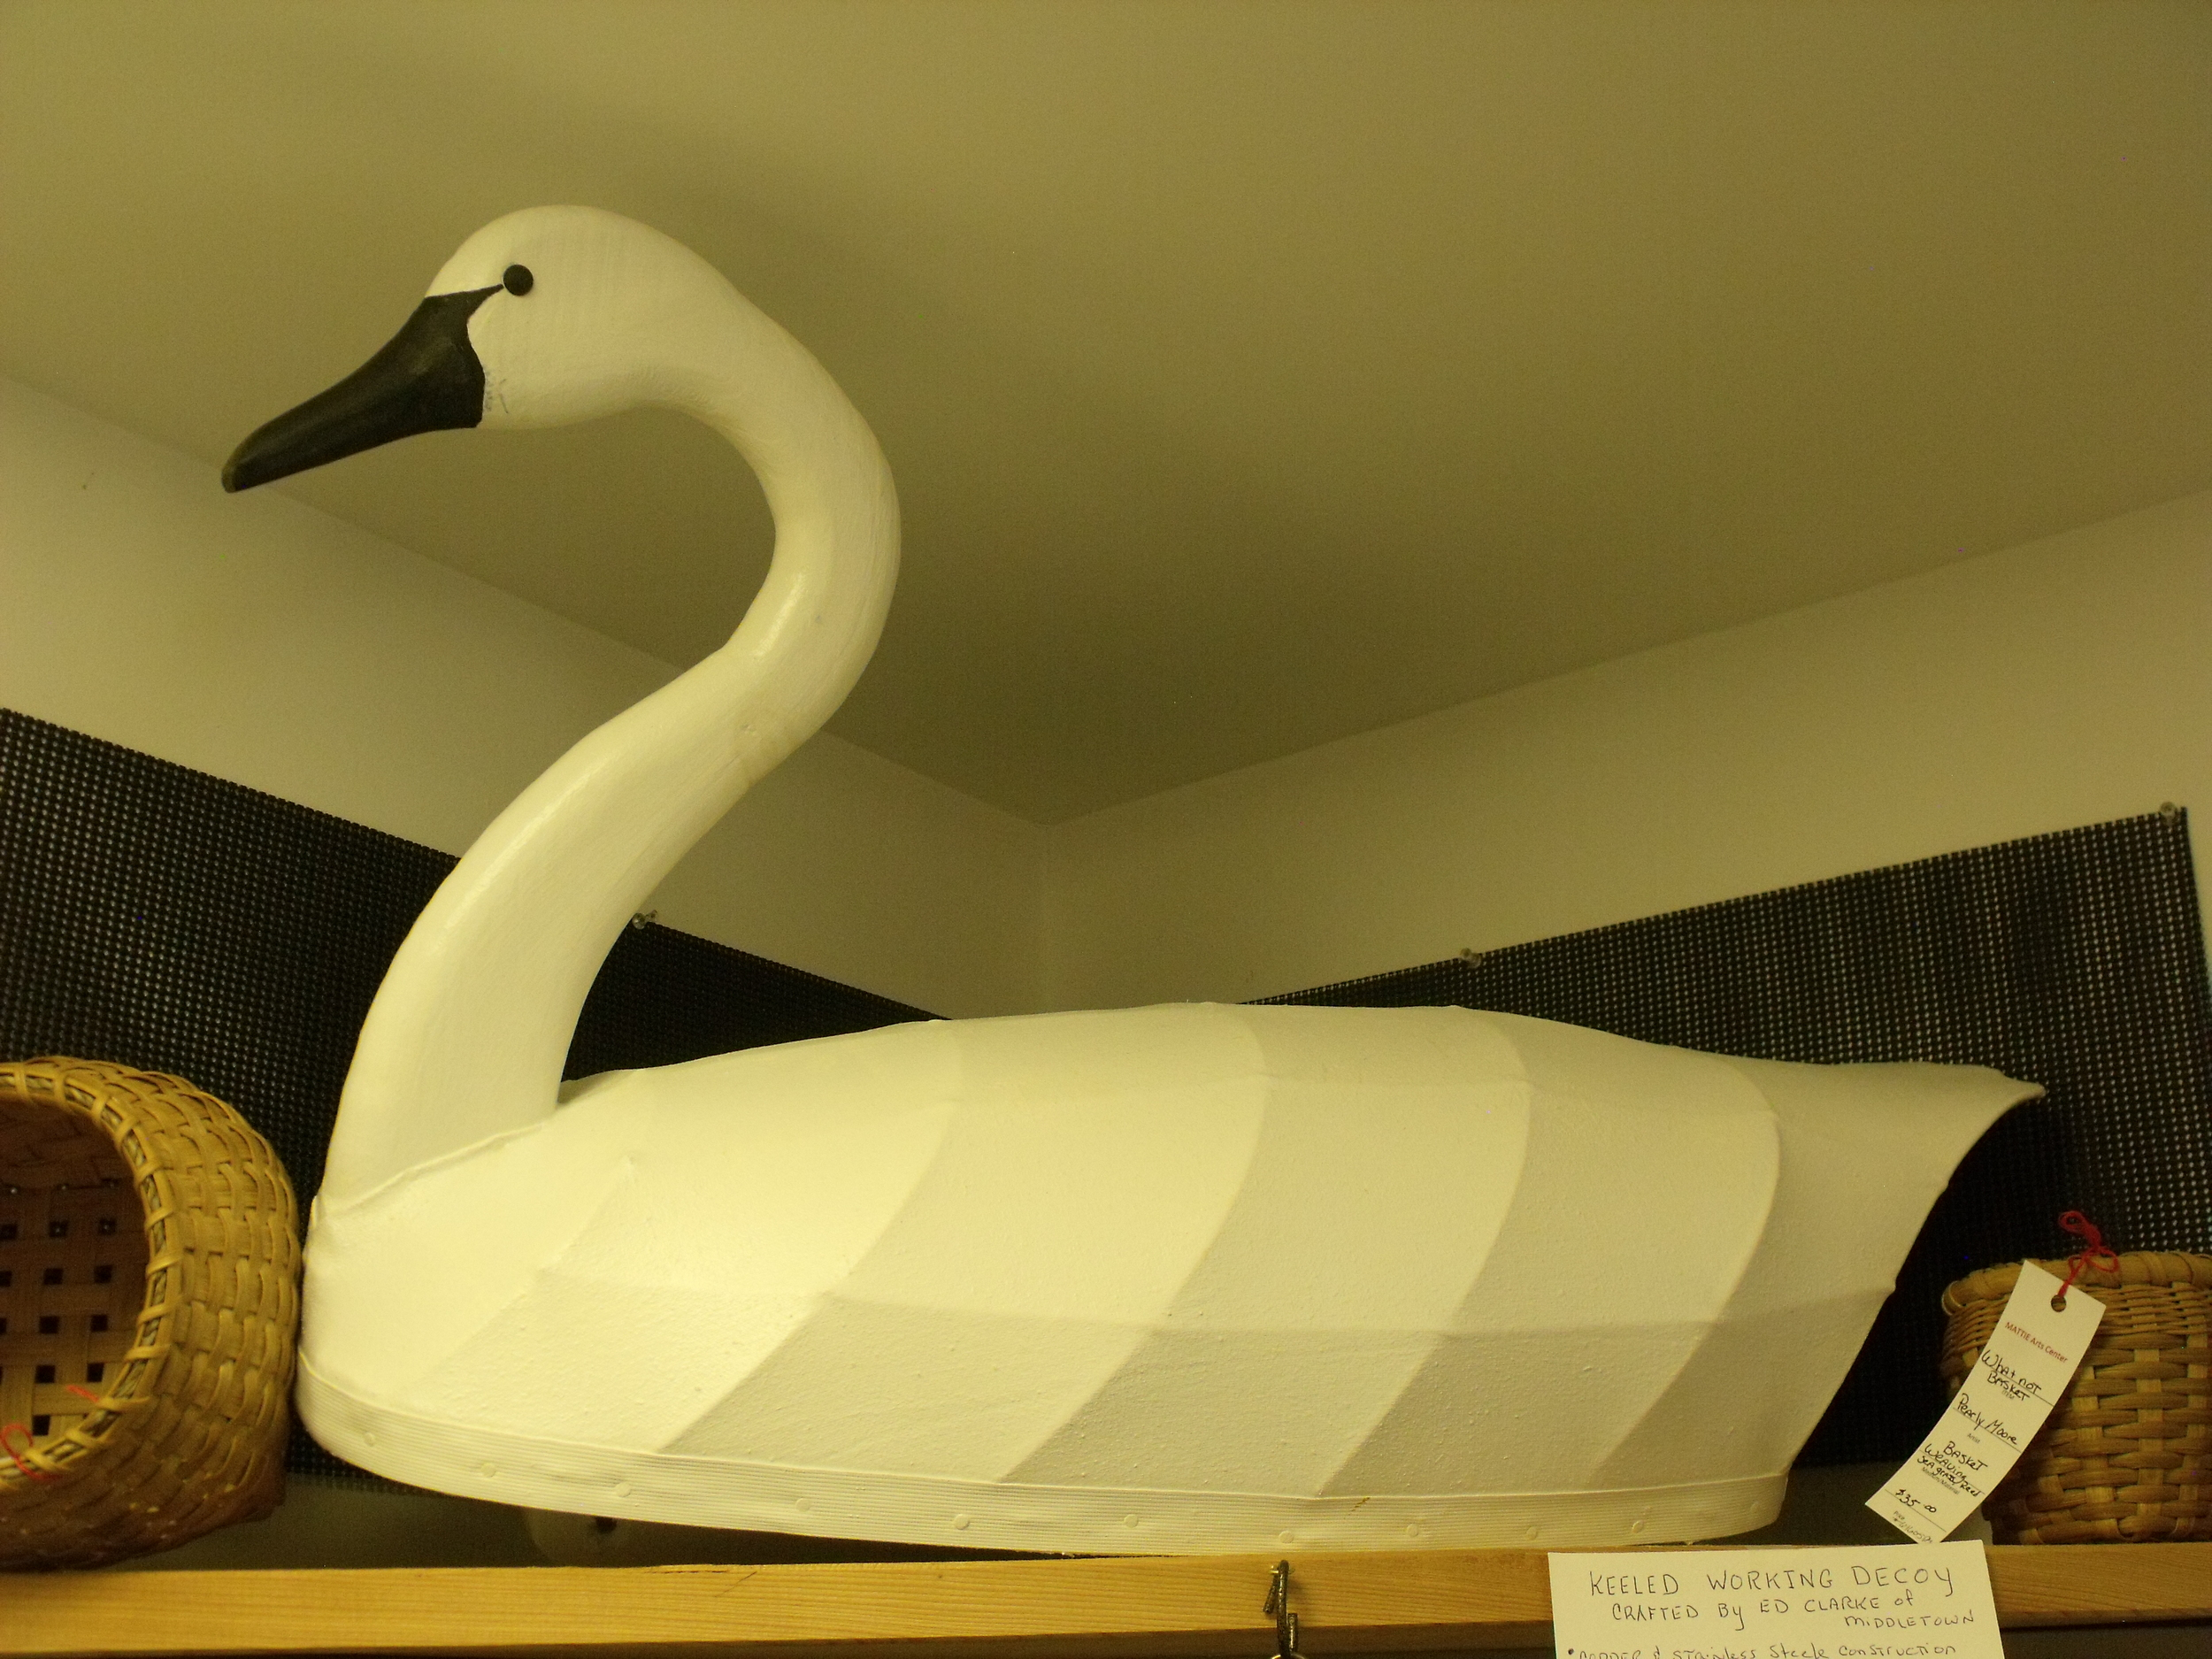 Tundra Swan Stretched Canvas back Decoy by Ed Clarke  $175